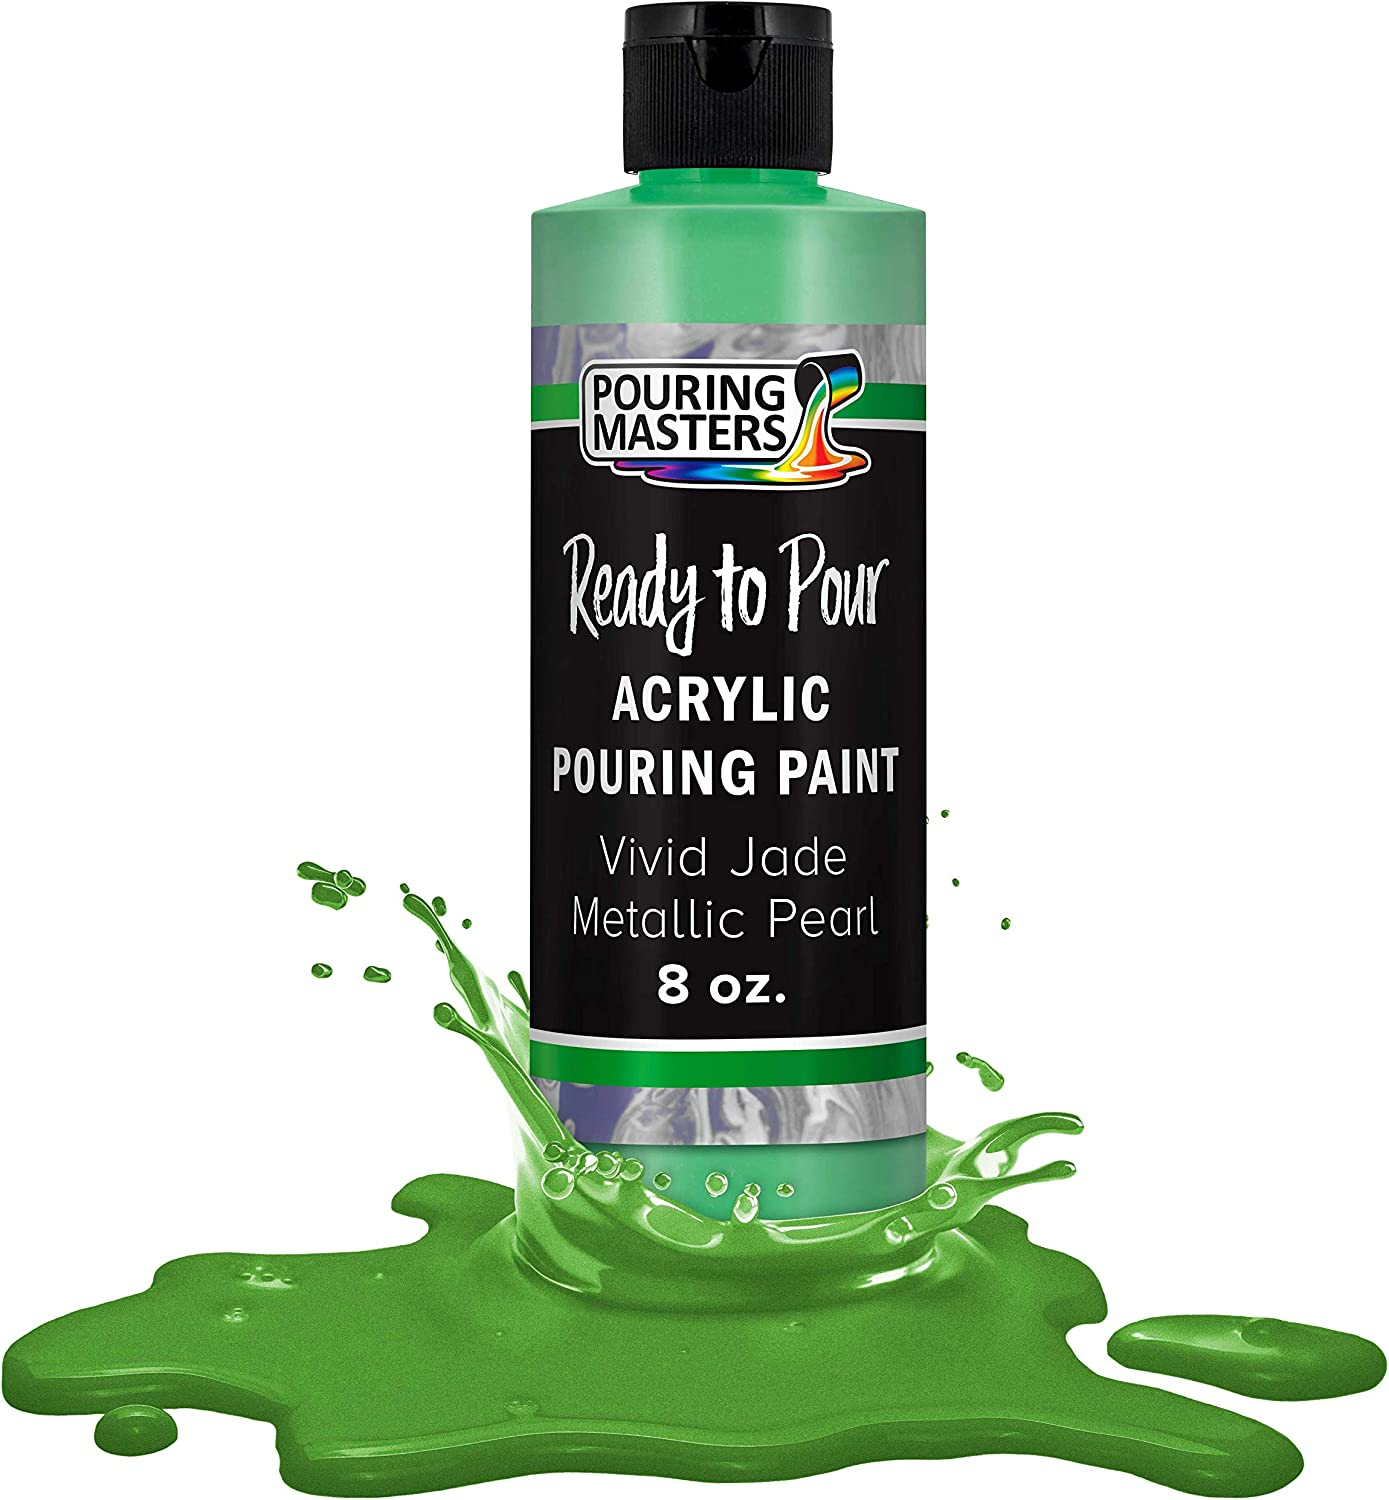 Pouring Masters Vivid Jade Metallic Pearl Acrylic Ready to Pour Pouring Paint – Premium 8-Ounce Pre-Mixed Water-Based - for Canvas, Wood, Paper, Crafts, Tile, Rocks and More